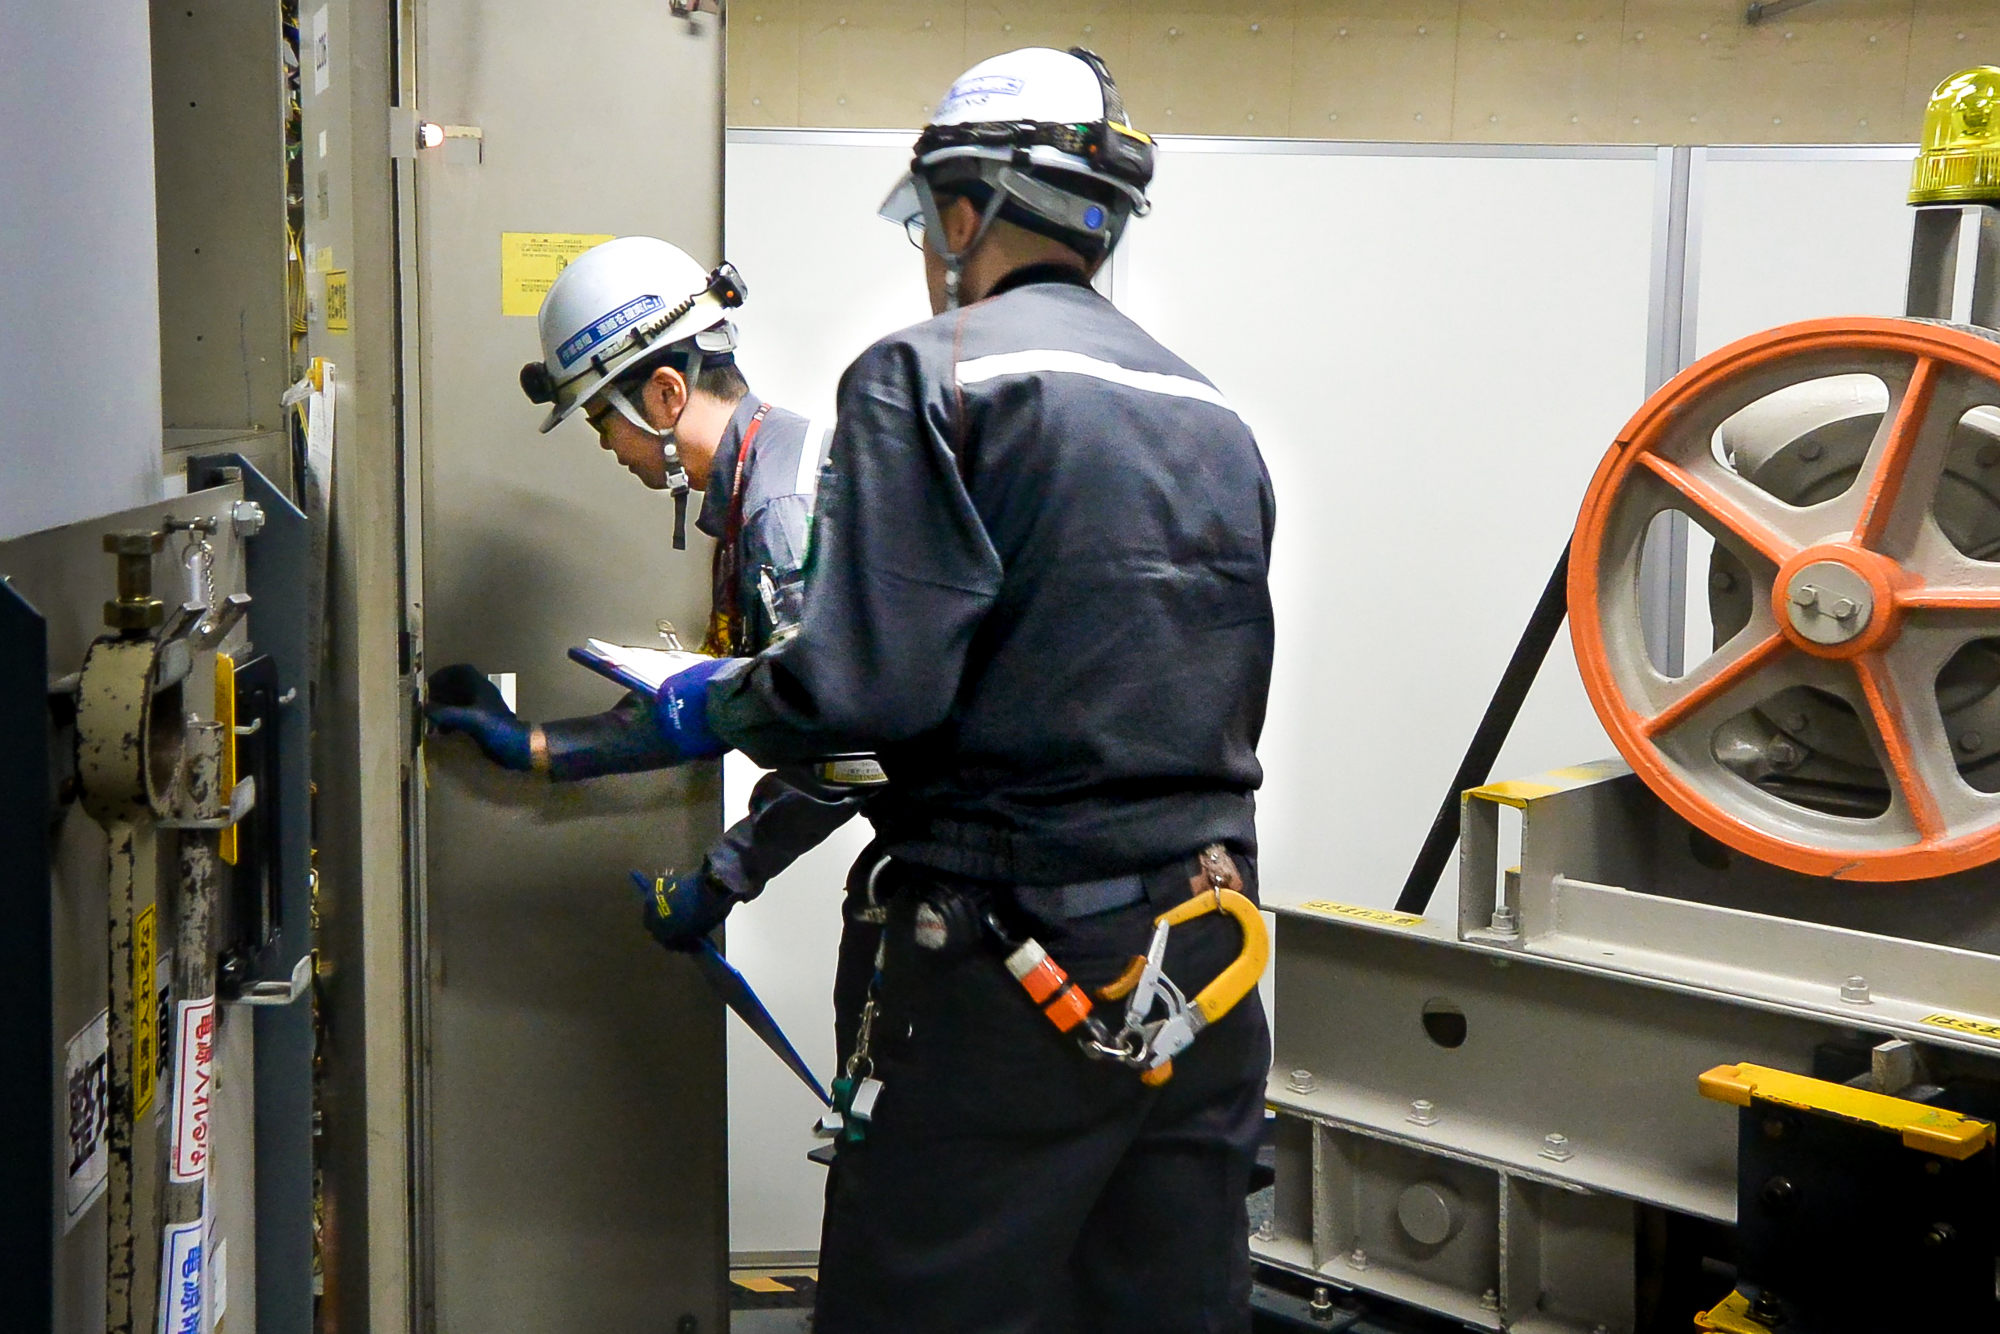 Mr. Umemura (at the background) attempting to open the control panel of a conventional type of elevator, which is located in Field Services Training Center, to measure the insulation resistance, during a legal inspection work competition in 2017.